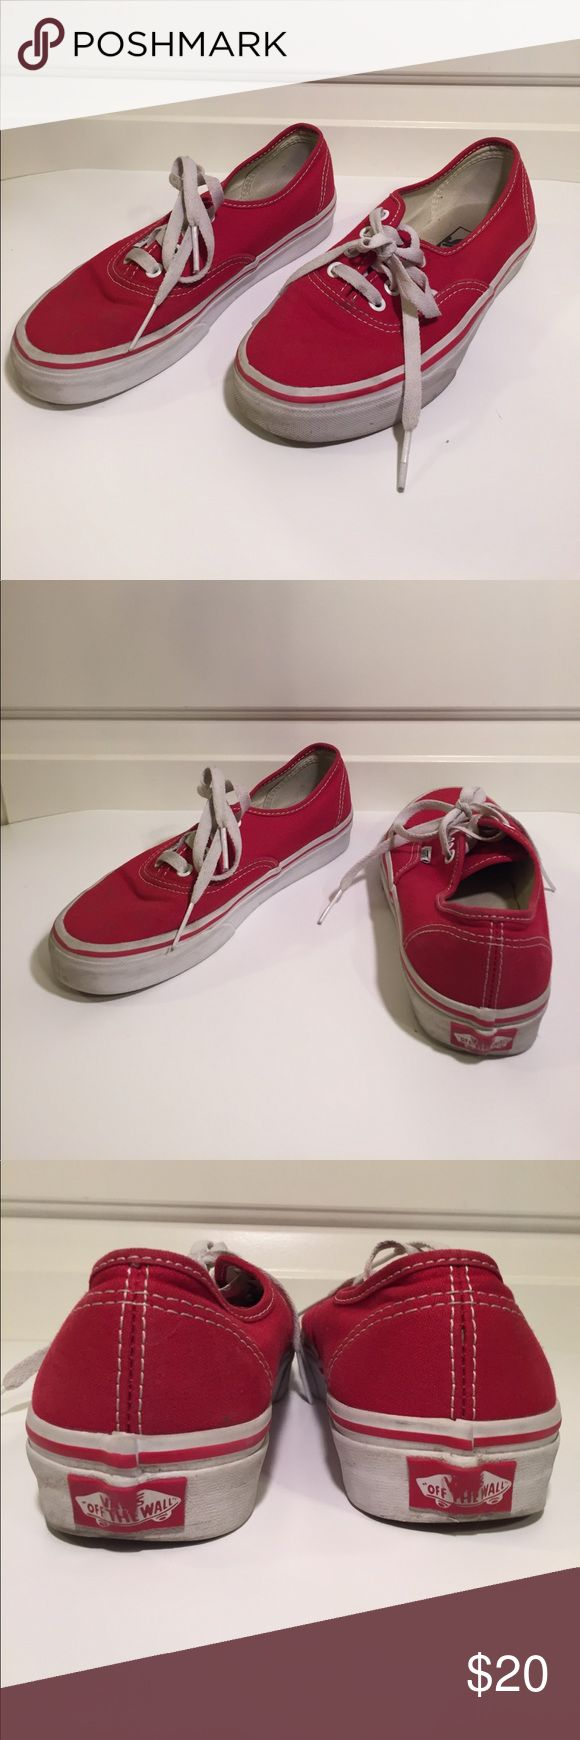 Vans Authentic Red Youth Size 6. Vans Authentic Red Youth Size 6. Please note, shoes show signs of wear but are in fair condition. I've taken plenty of pictures to show condition of shoes. Vans Shoes Sneakers